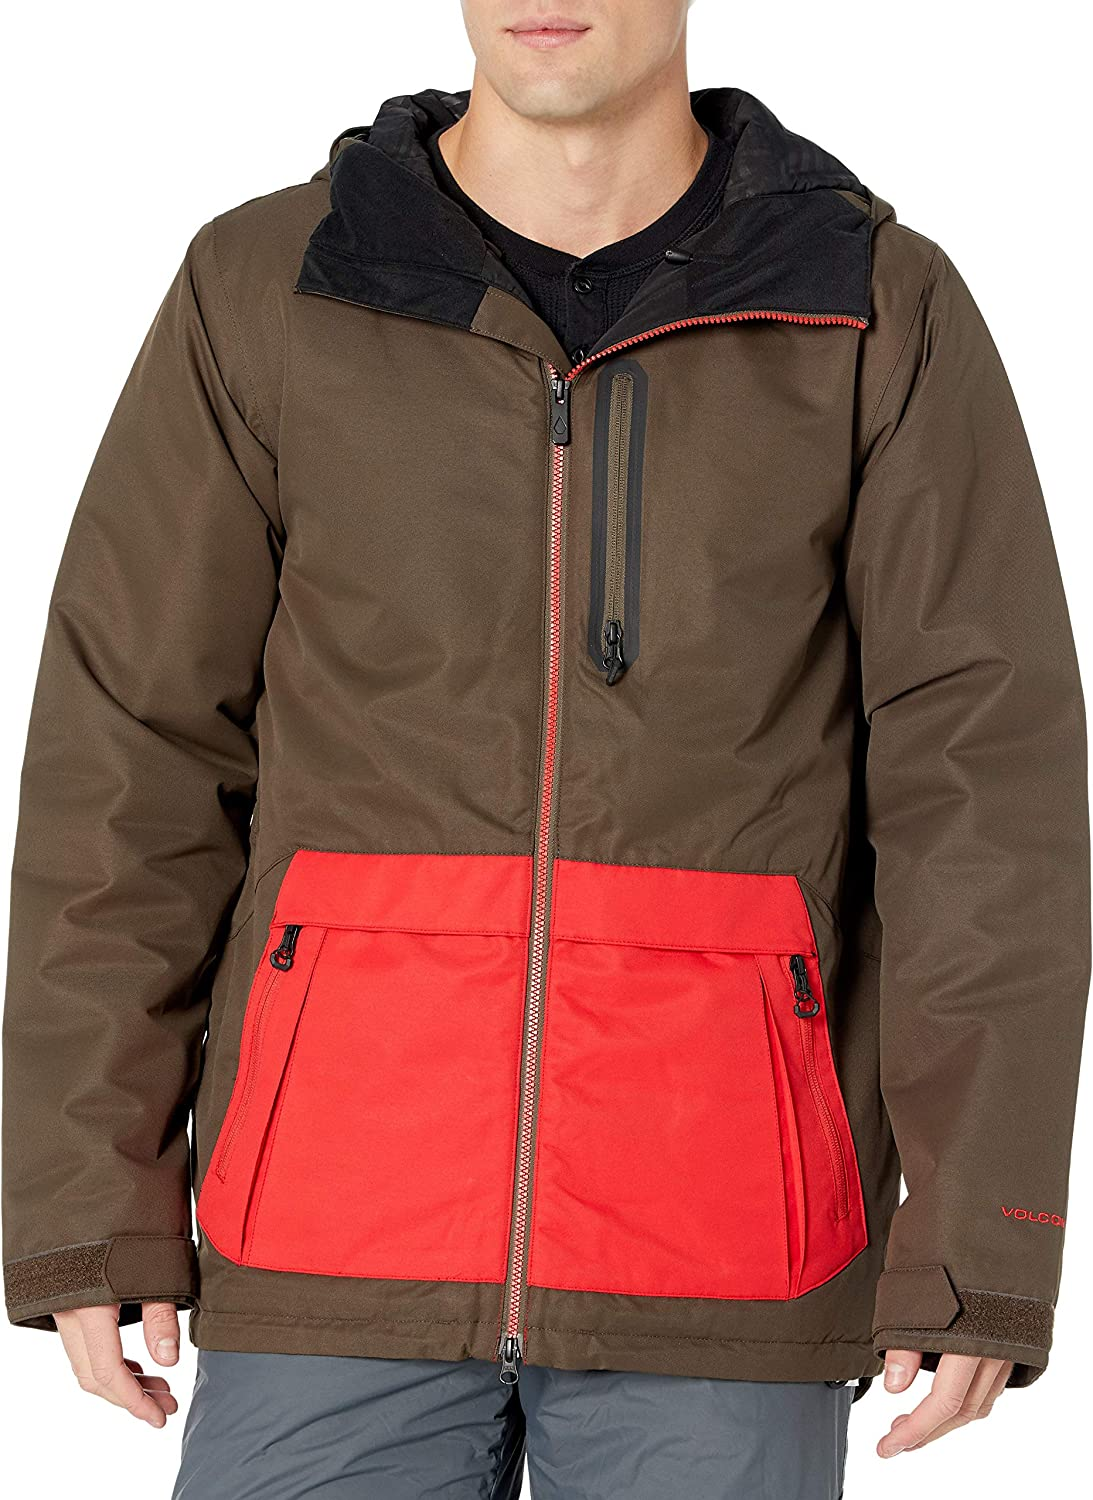 Volcom Men's Deadly Stones Insulated Snowboard Jacket : Clothing, Shoes & Jewelry